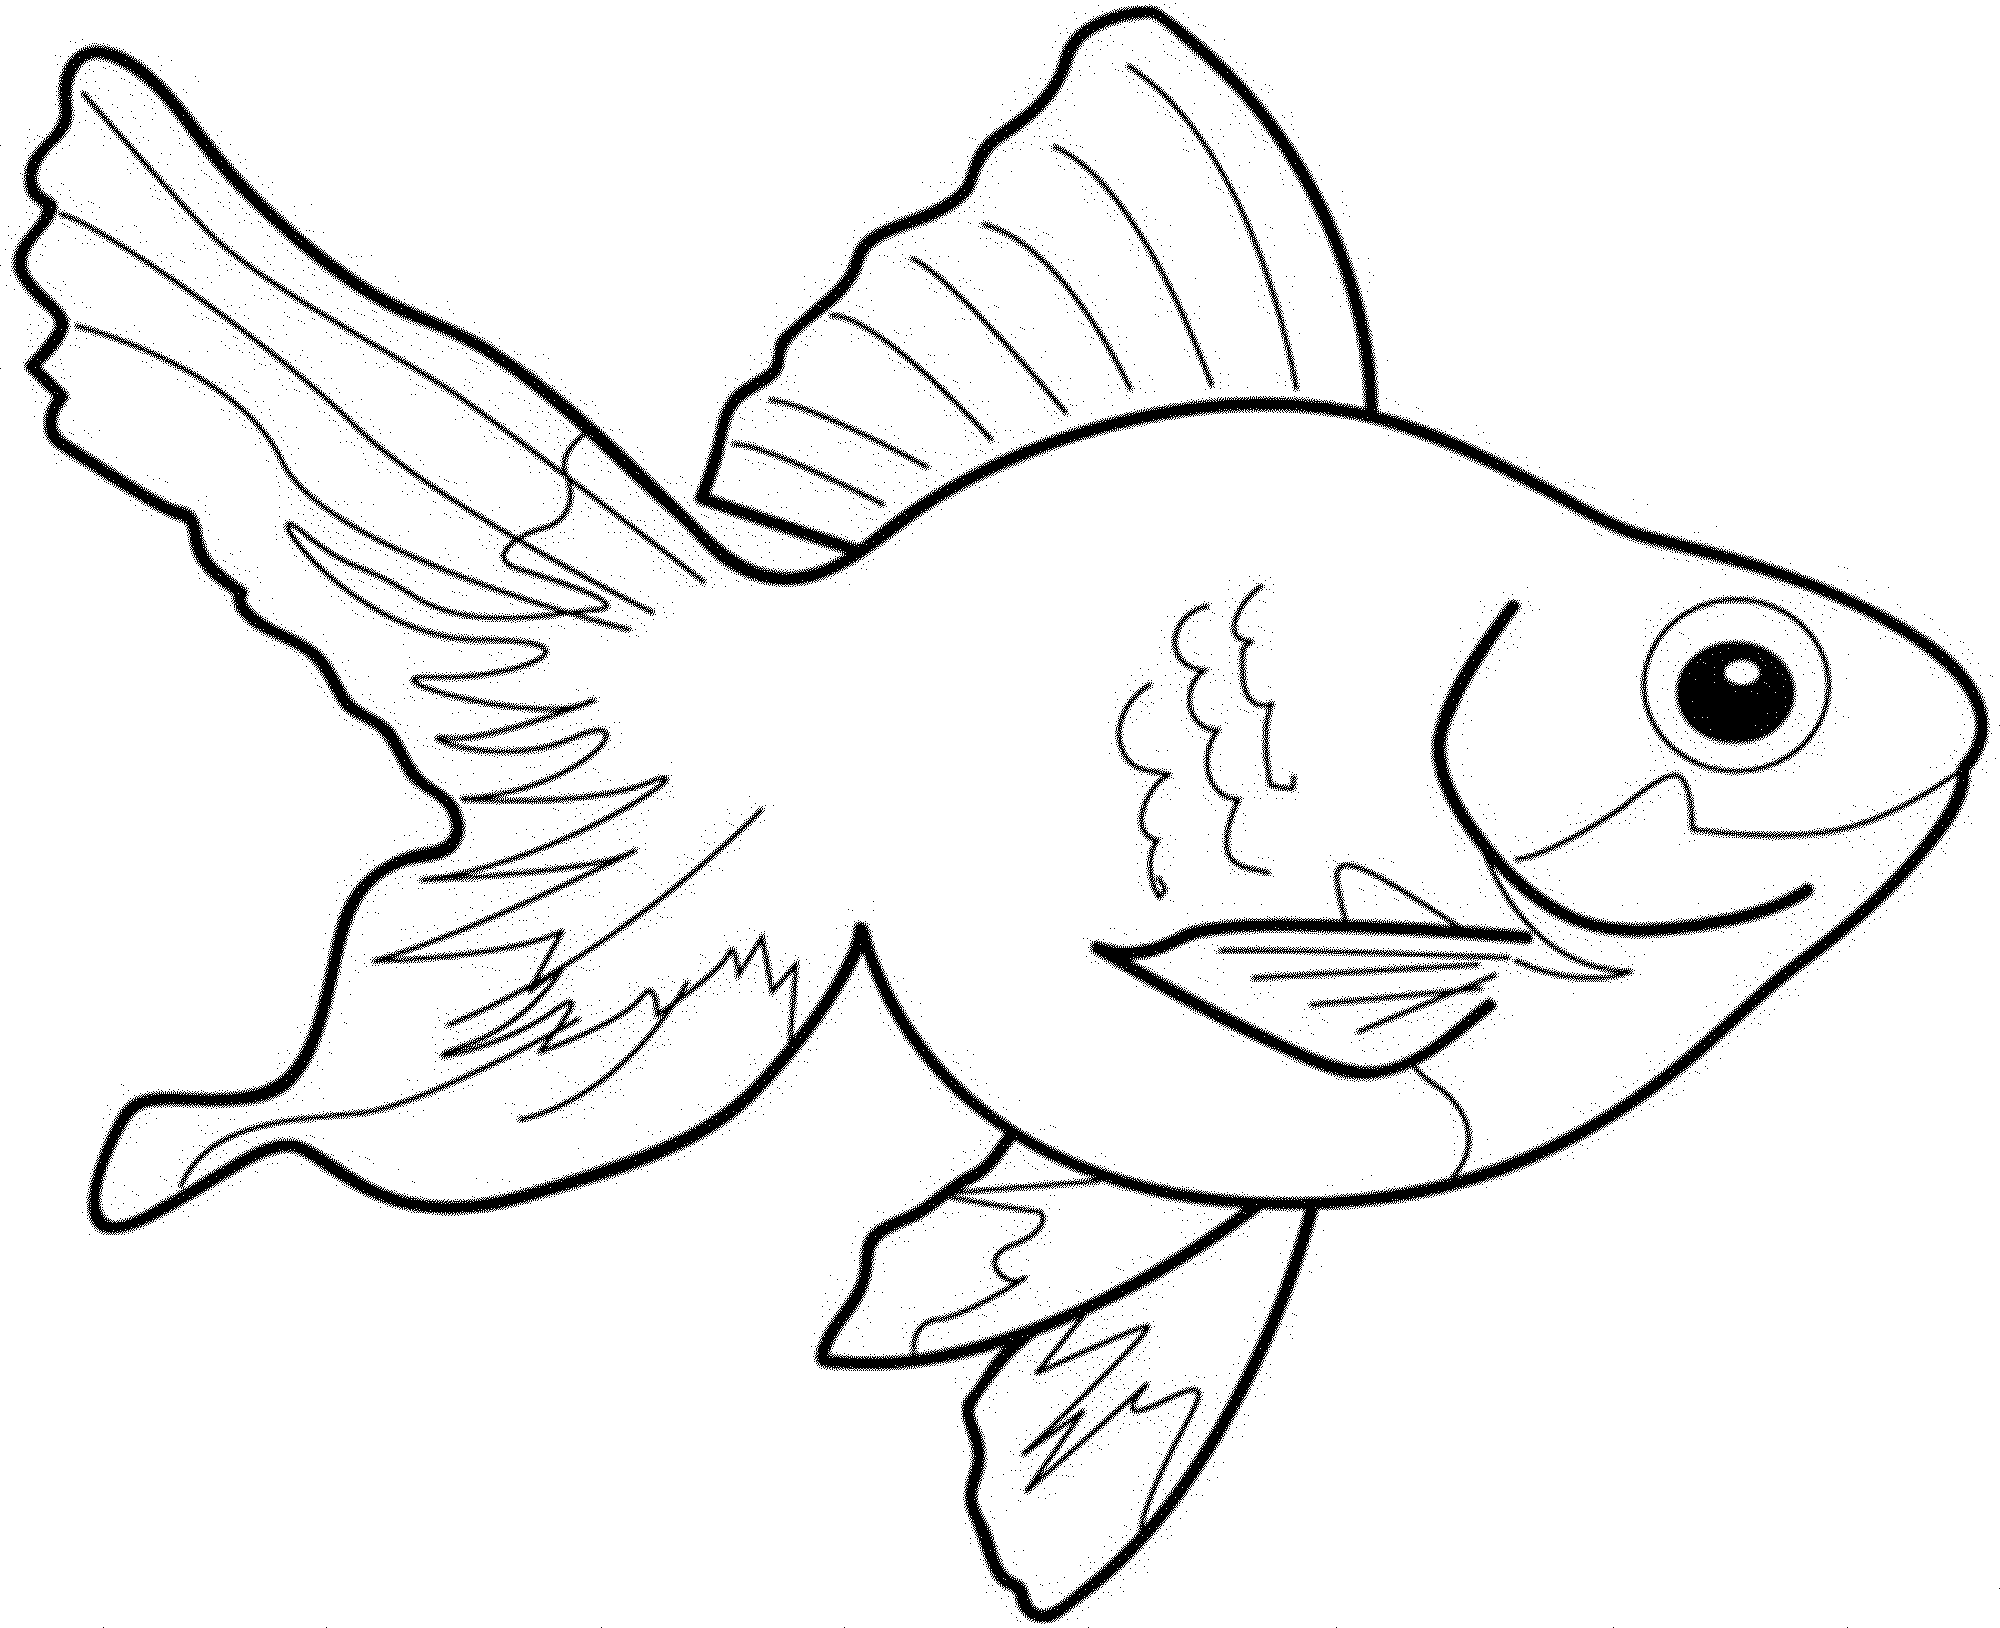 goldfish coloring printable goldfish coloring pages for kids cool2bkids goldfish coloring